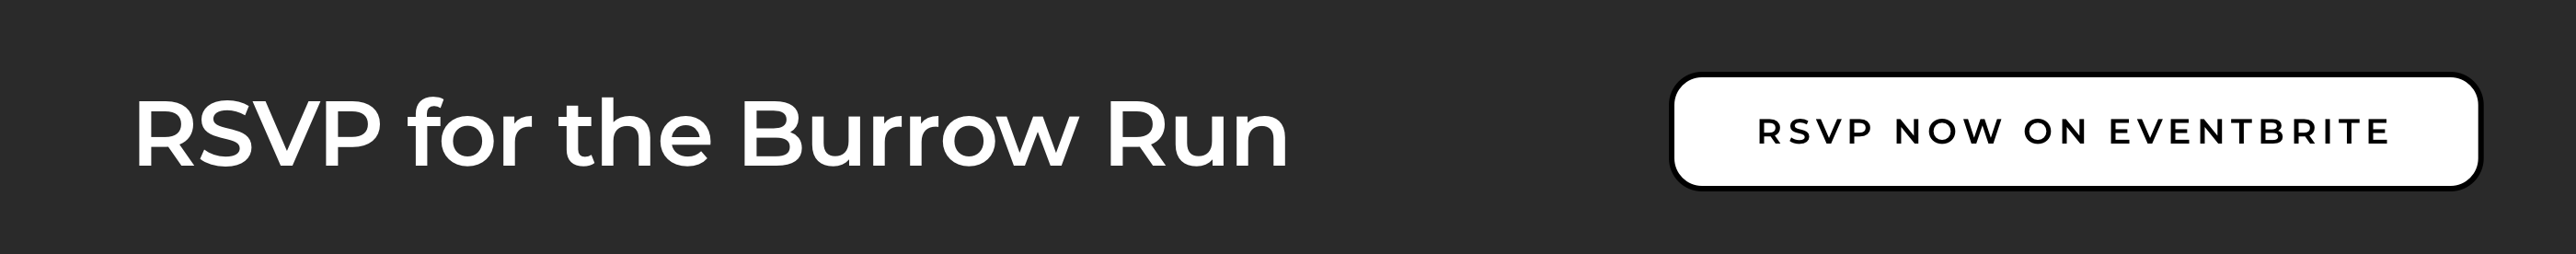 rsvp for the burrow run on eventbrite